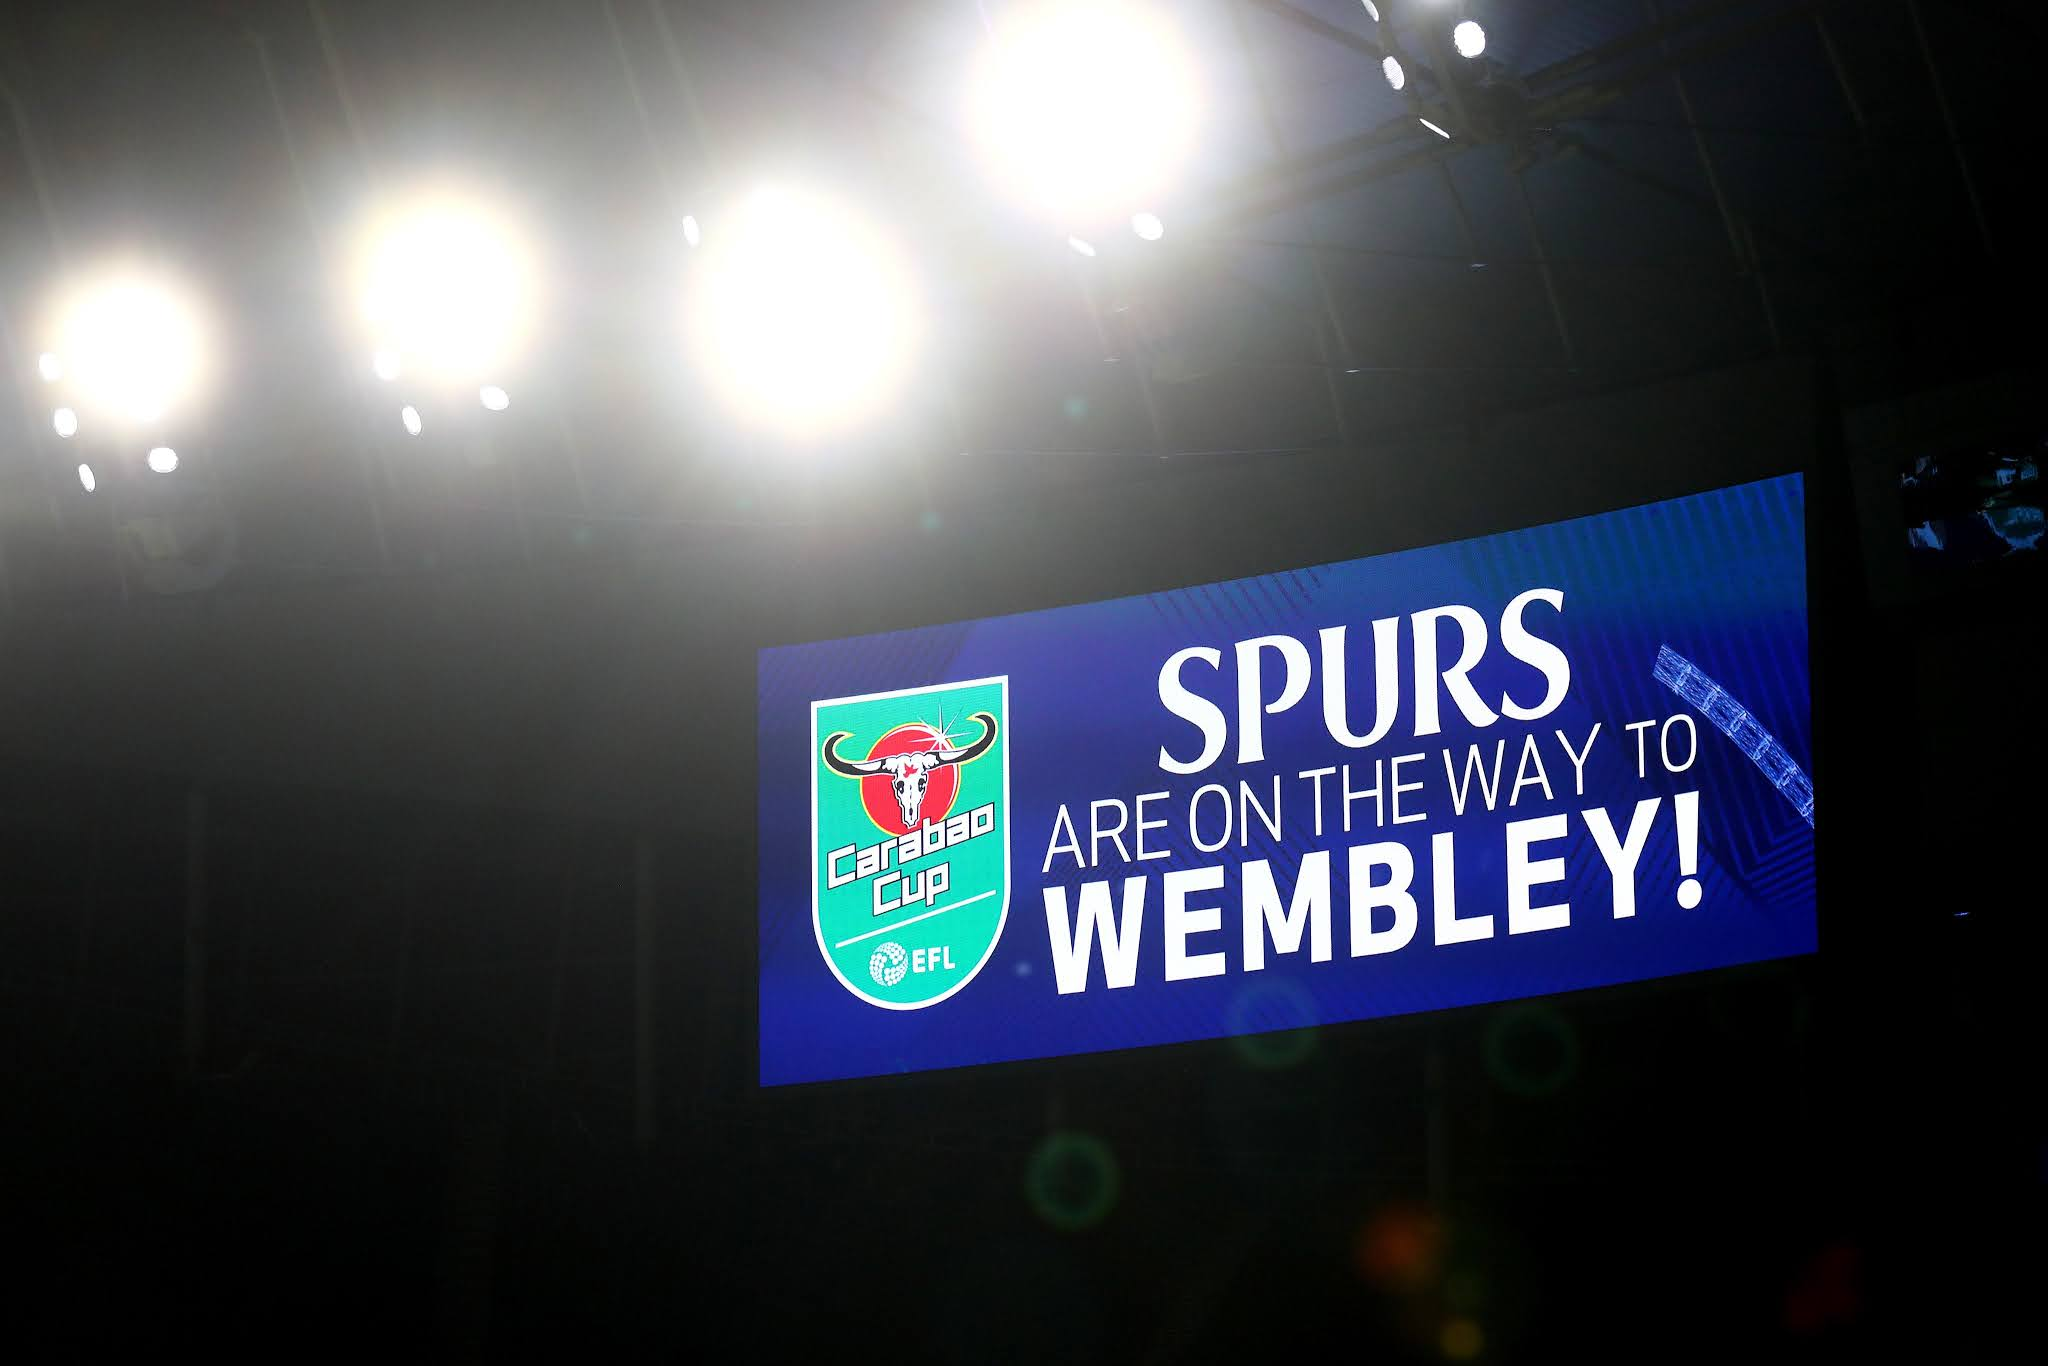 Tottenham Hotspur will face Manchester City in the Carabao Cup final at Wembley stadium on April 25th, 2021